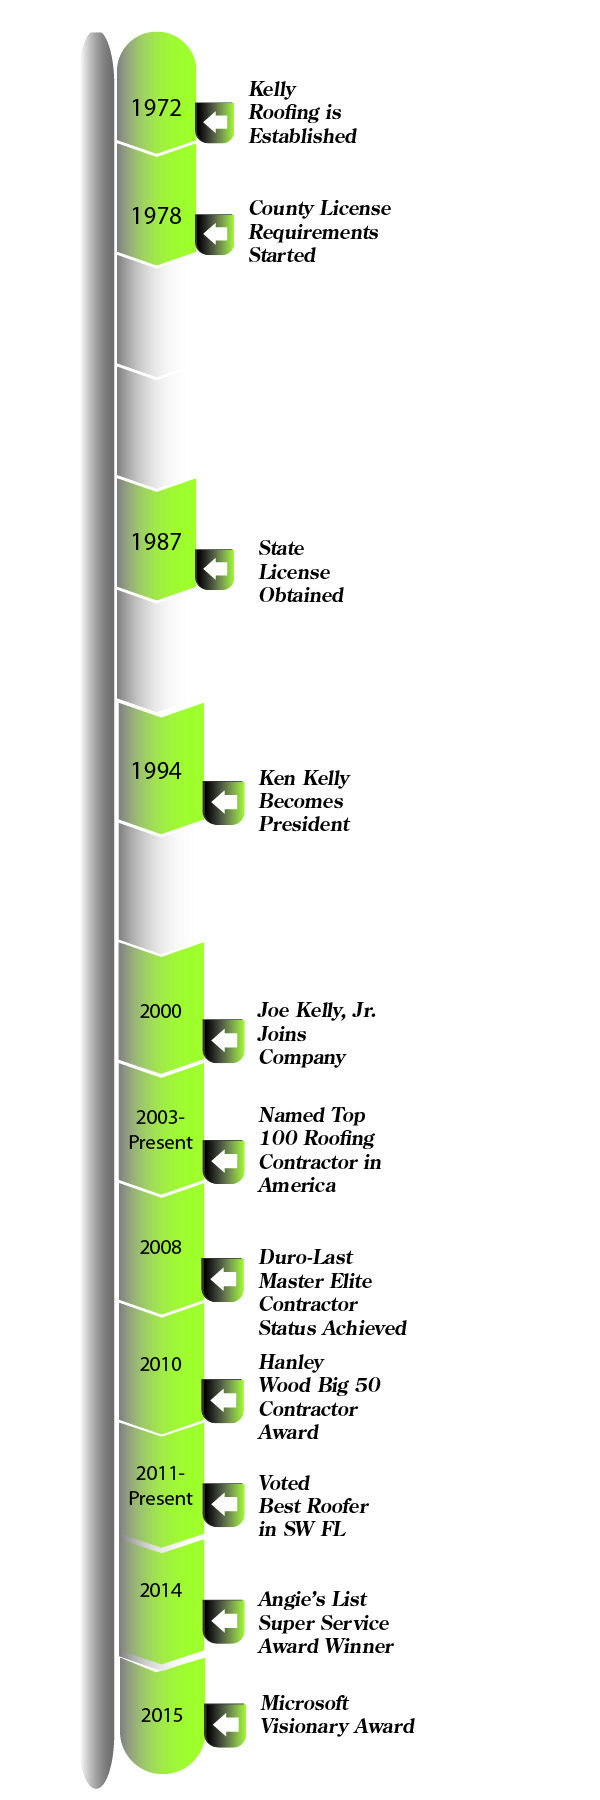 Kelly Roofing Timeline Updated KR.TIMELINE 02 March 2015 raw